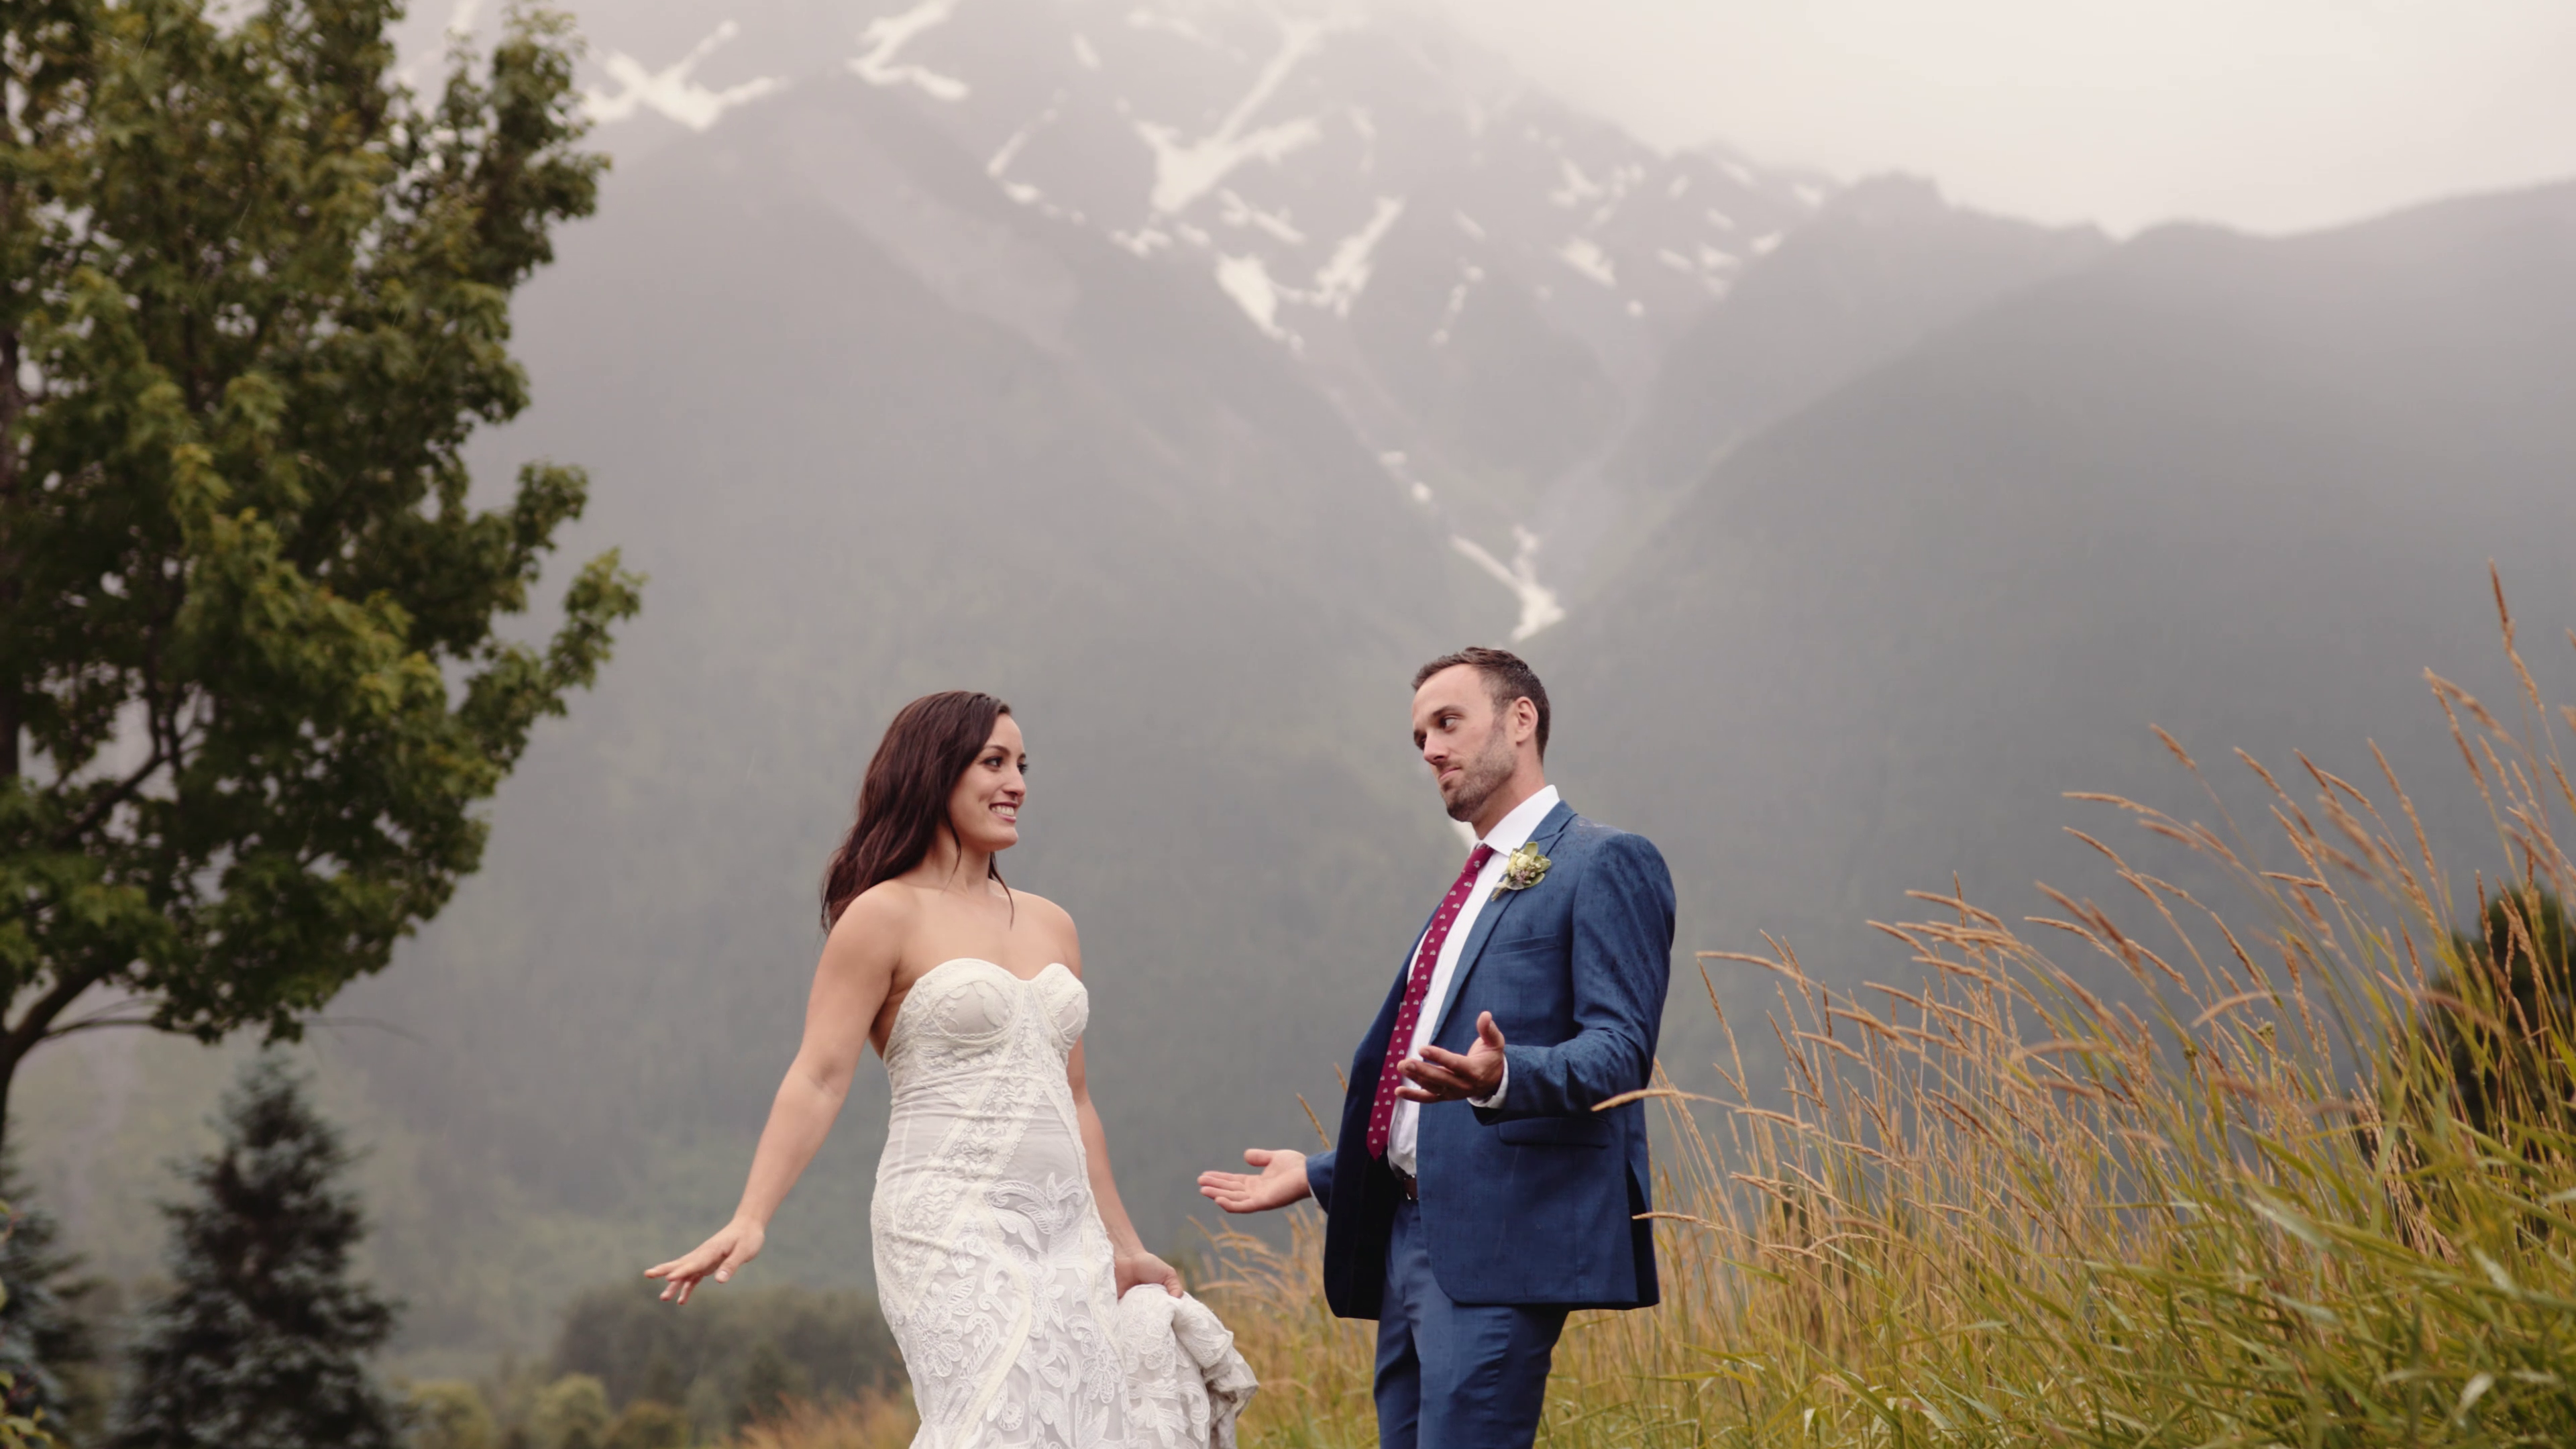 Courtney + Eli | Pemberton, Canada | The Big Sky Golf Club